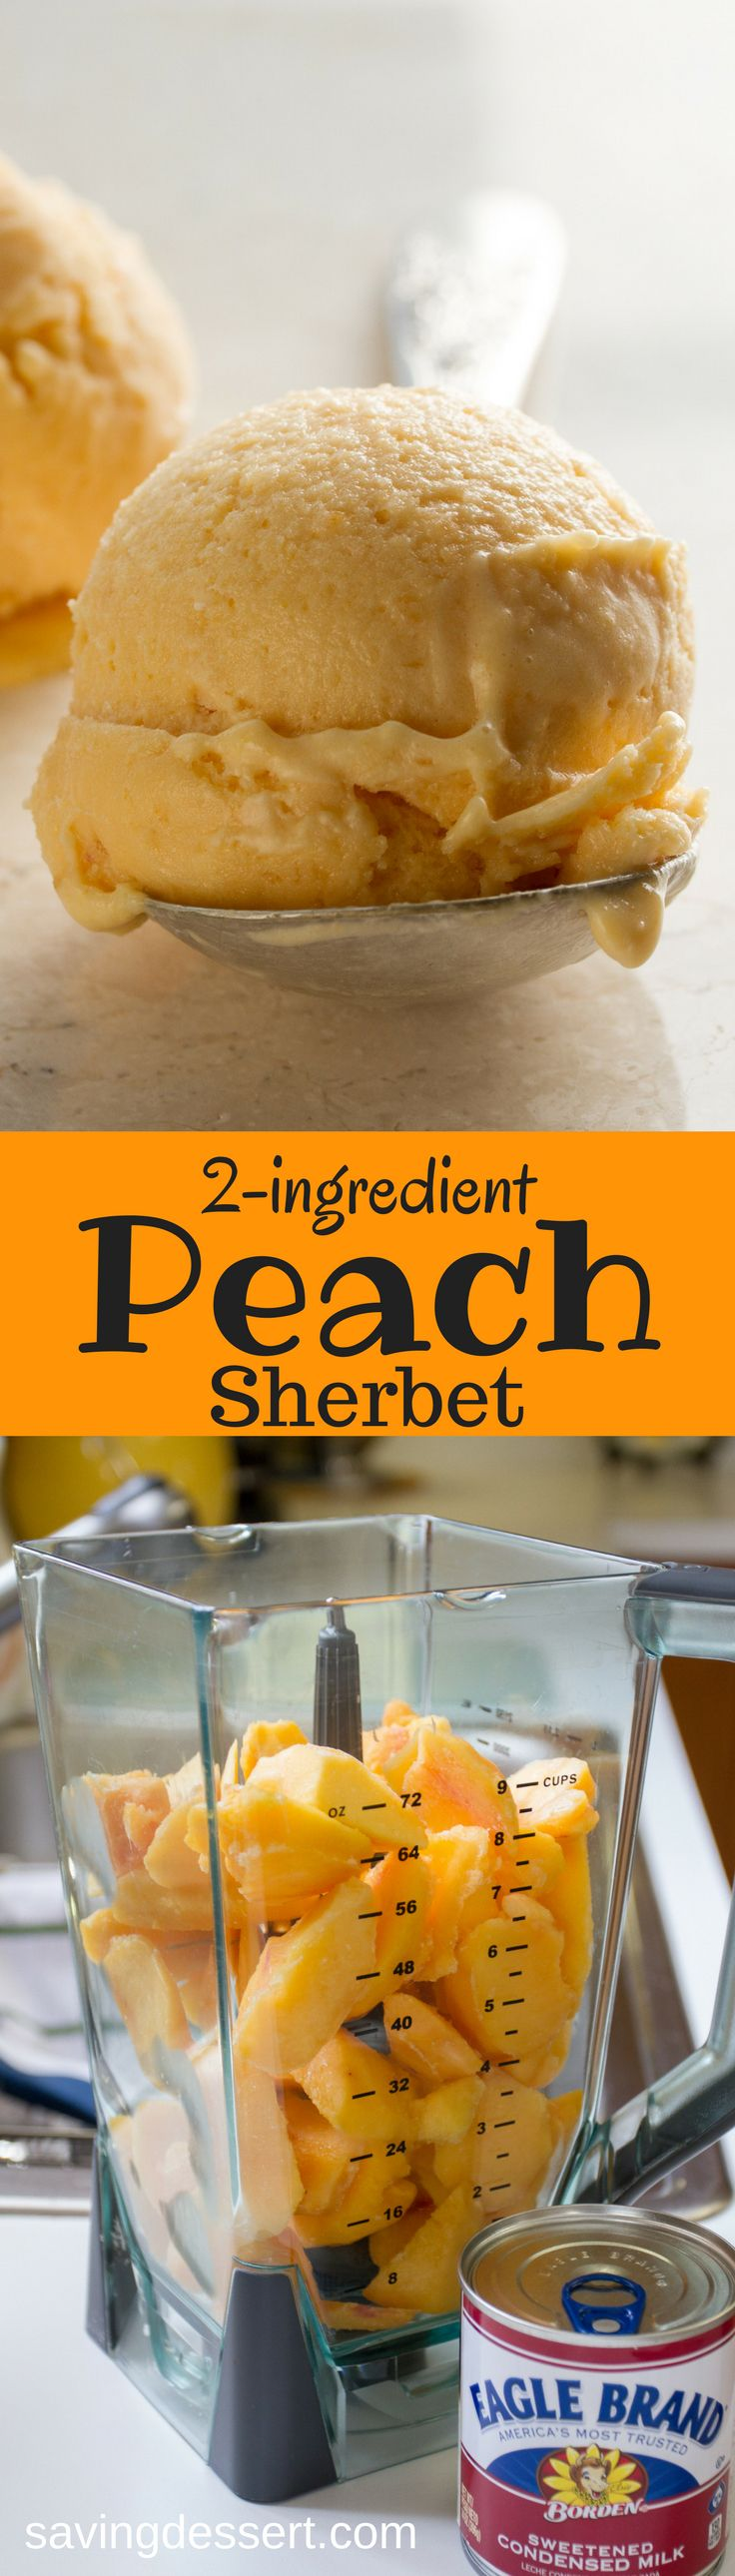 Peach Sherbet - a creamy, delicious, velvety smooth fresh peach dessert - made with only two ingredients right in your blender! www.savingdessert.com